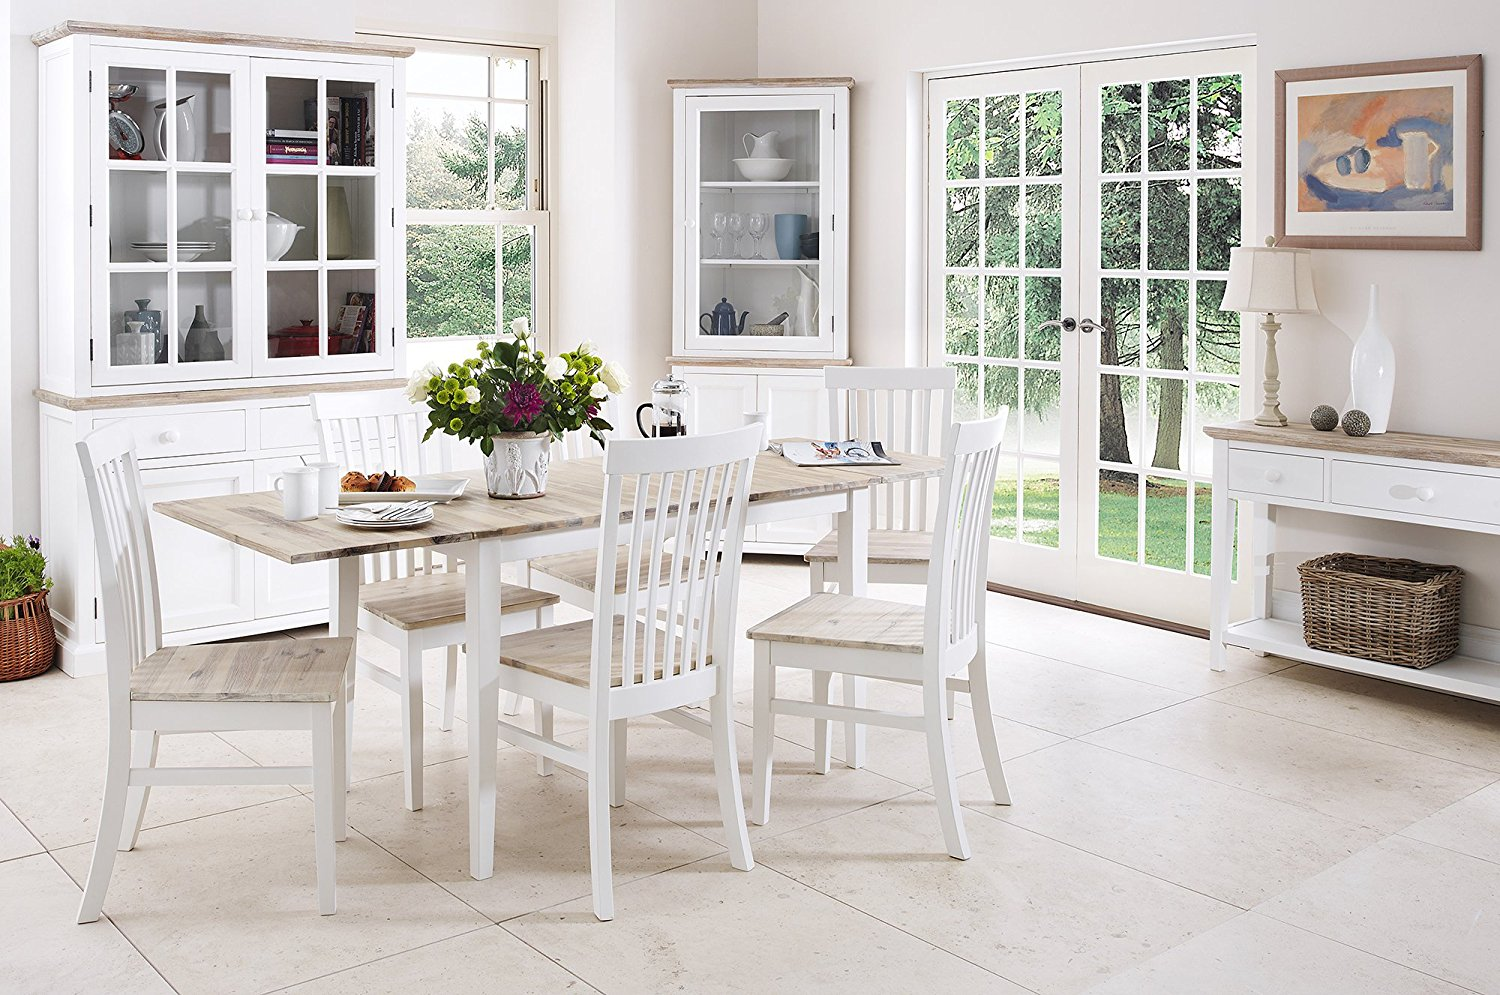 white wooden kitchen chairs distressed wood cabinets 28 2018